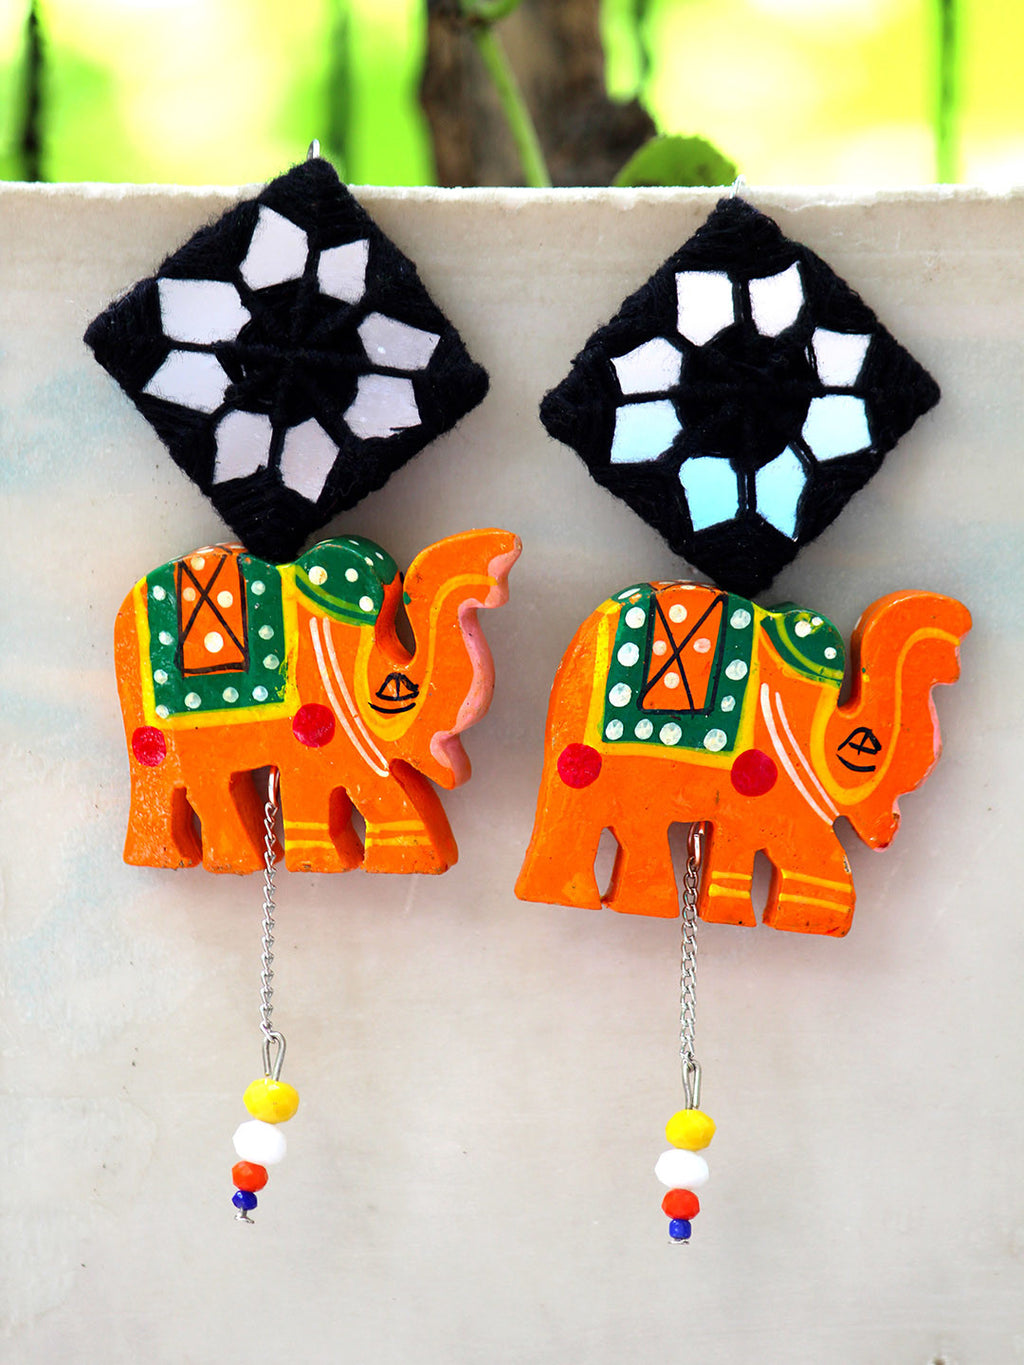 ORANGE TRIBAL ELEPHANT HAND-PAINTED EARRINGS - chique boutique